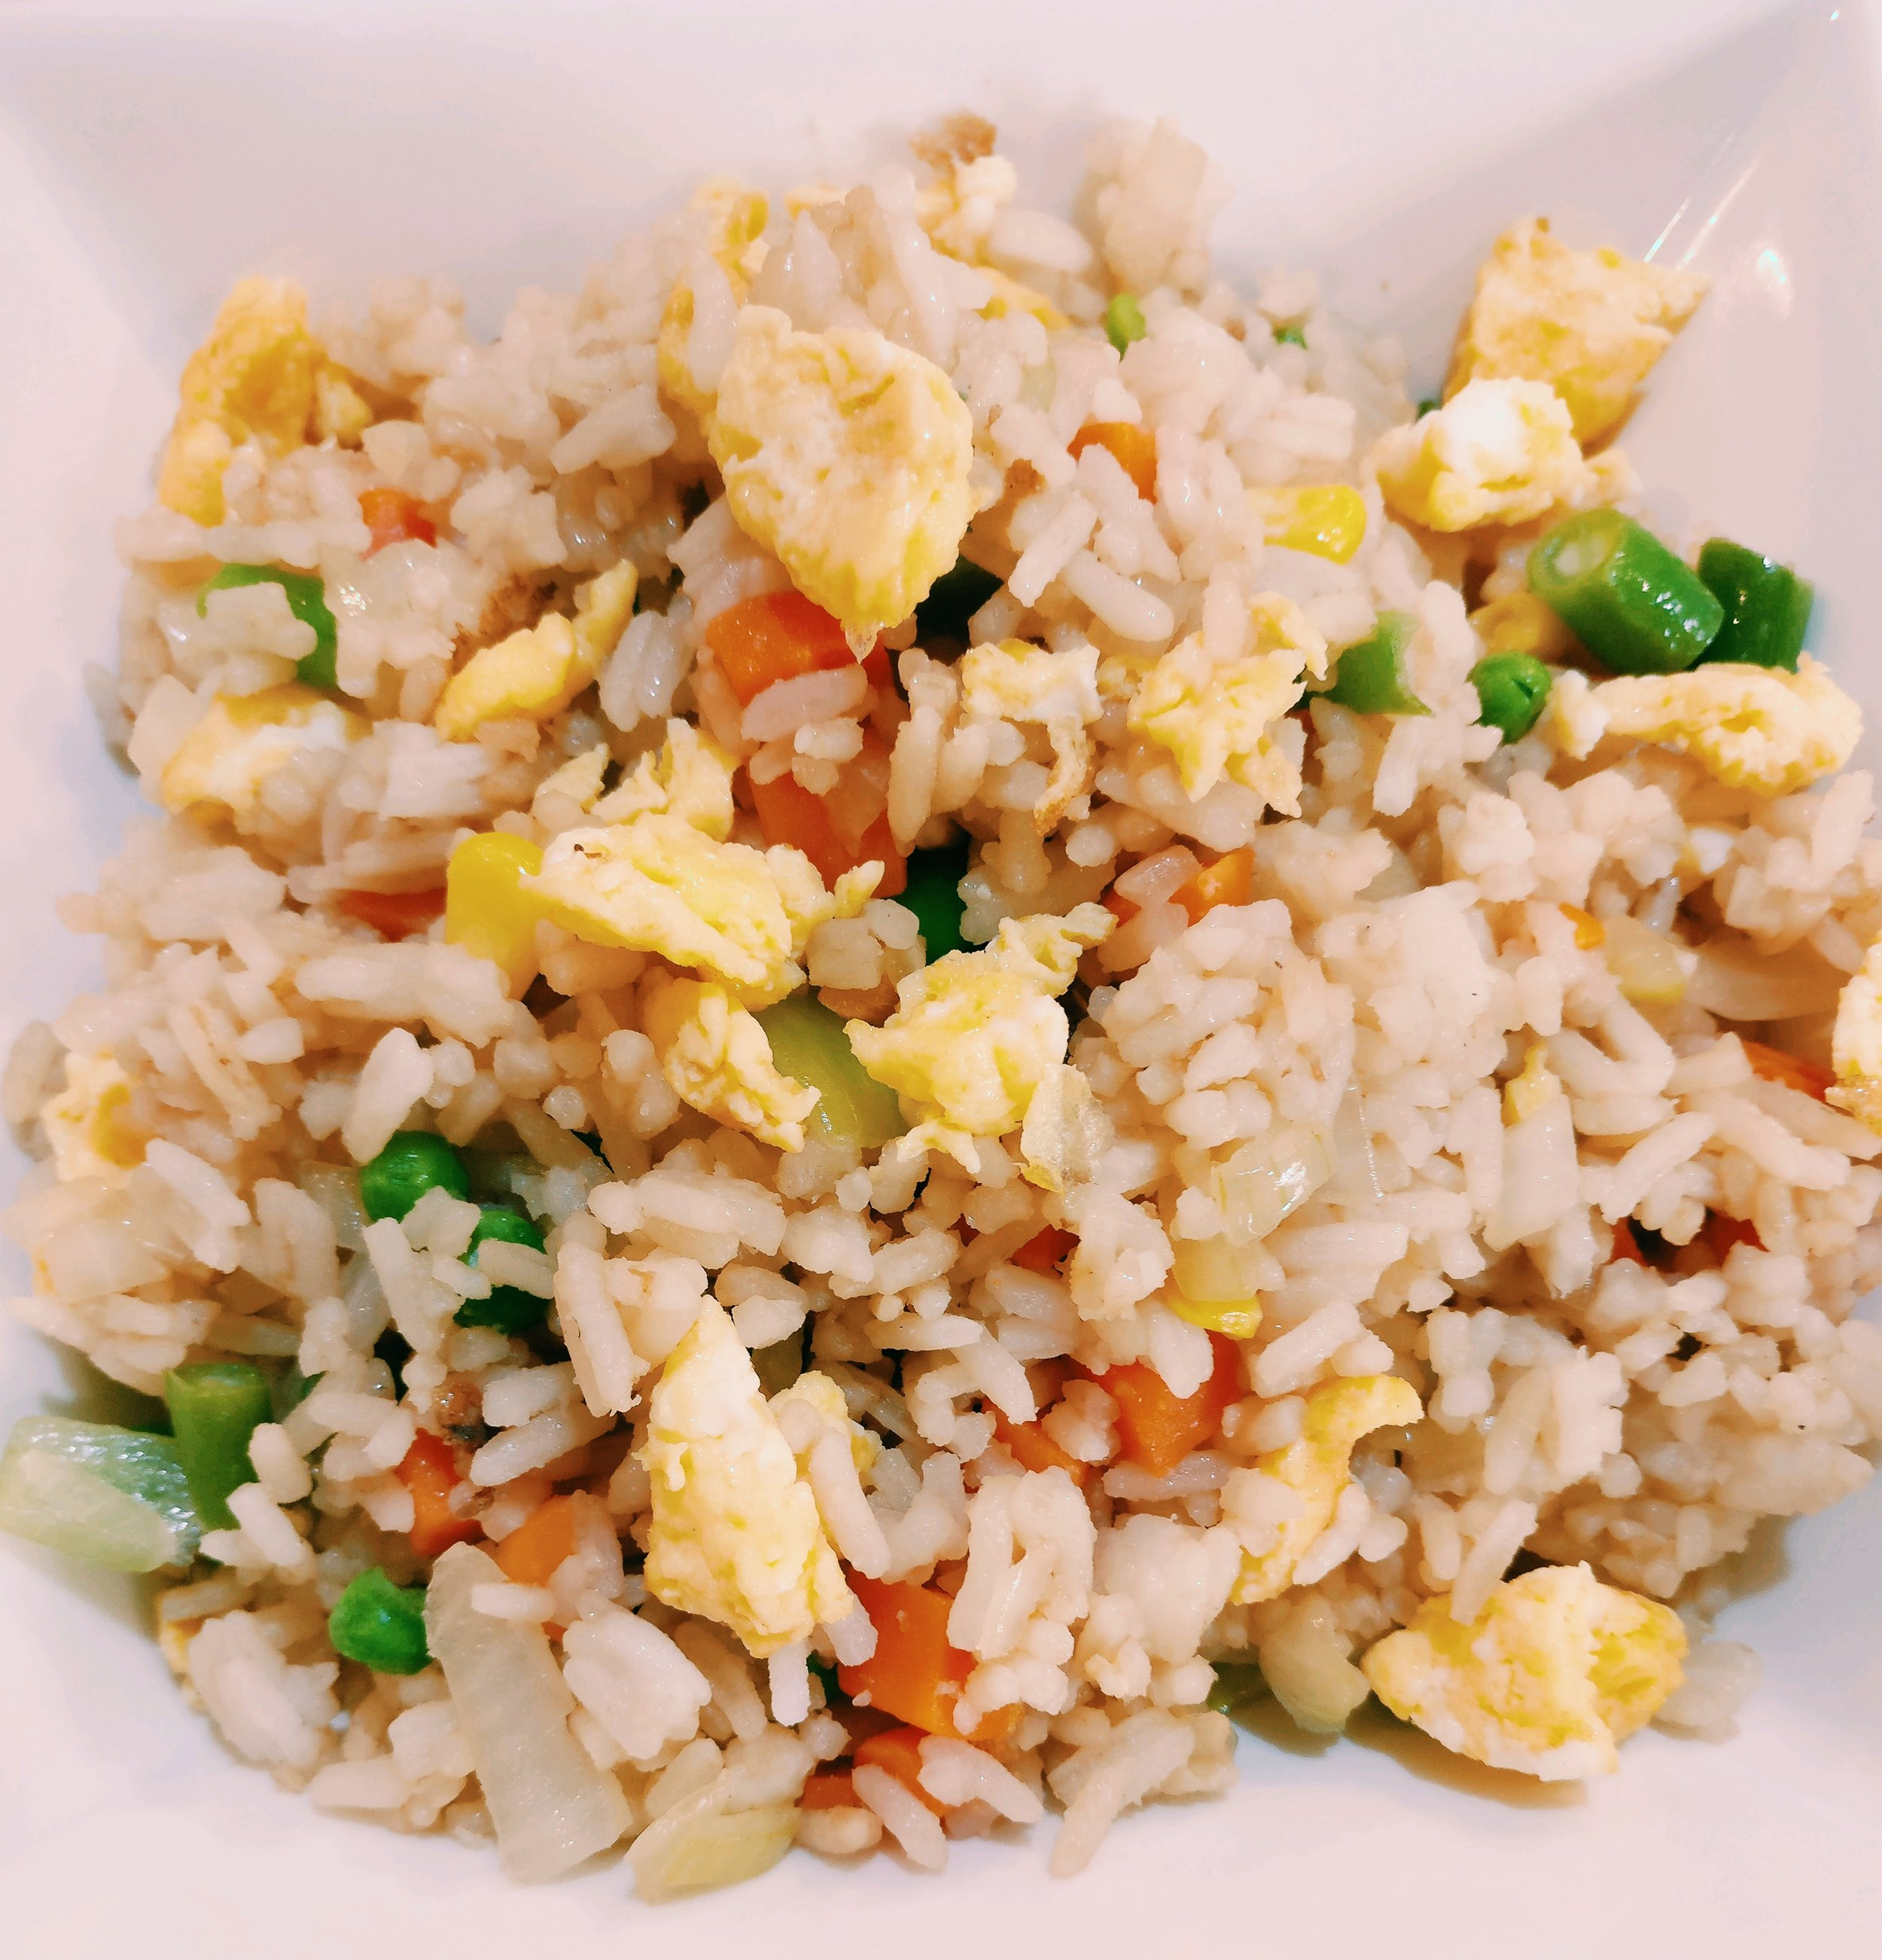 Egg Fried Rice - Ingredients3C Cooked Cold Rice1 Onion - Finely Diced3 Eggs - Whisked1C Frozen Veges1T Soy SauceMethod1. Whisk the eggs and fry in a large frying pan until cooked, remove from the frying pan2. Add the onion to the frying pan and cook though for 2-3 mins3. Add the rice and frozen veges to the onion and cook for 5-7 mins until veges are cooked though4. Add the soy sauce to the frying pan and stir to combine, cook 1-2 mins5. Add the cooked egg to the frying pan and stir to combine